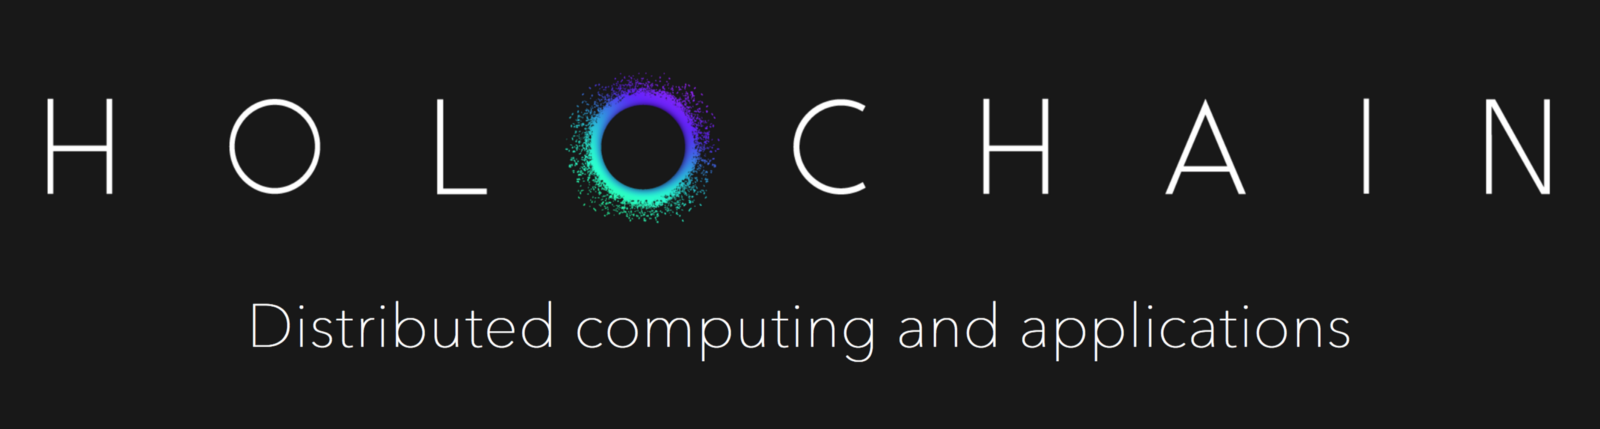 /wtf-is-holochain-35f9dd8e5908 feature image